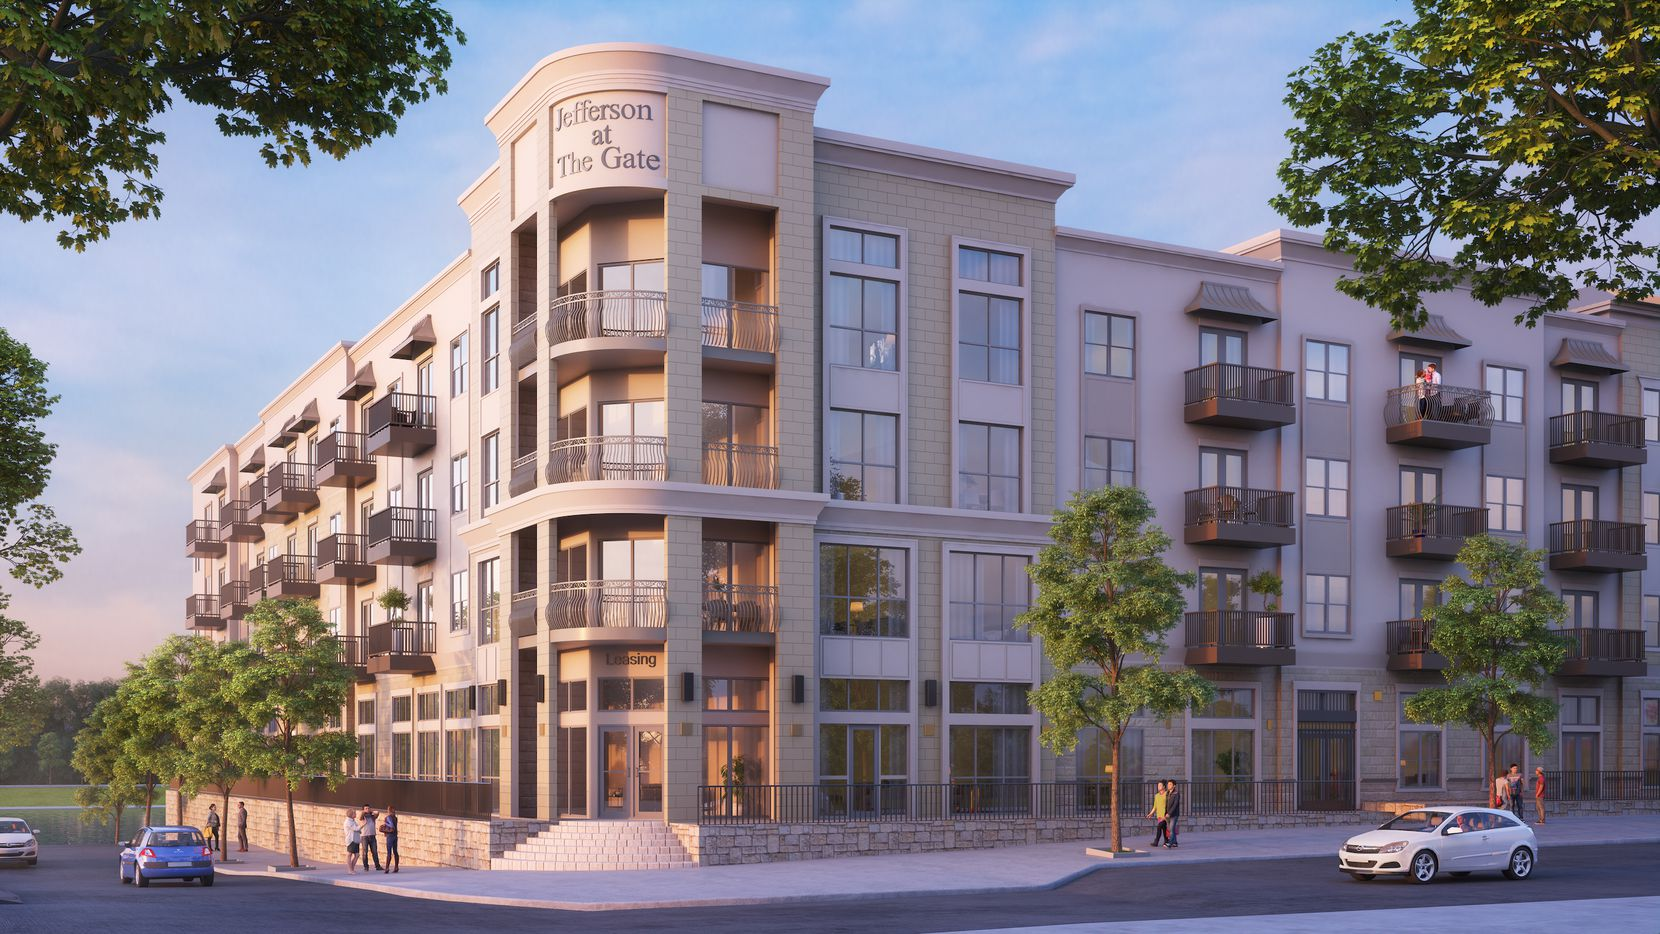 The Jefferson at the Gate apartments are in the $700 million Gate development on the Dallas North Tollway.